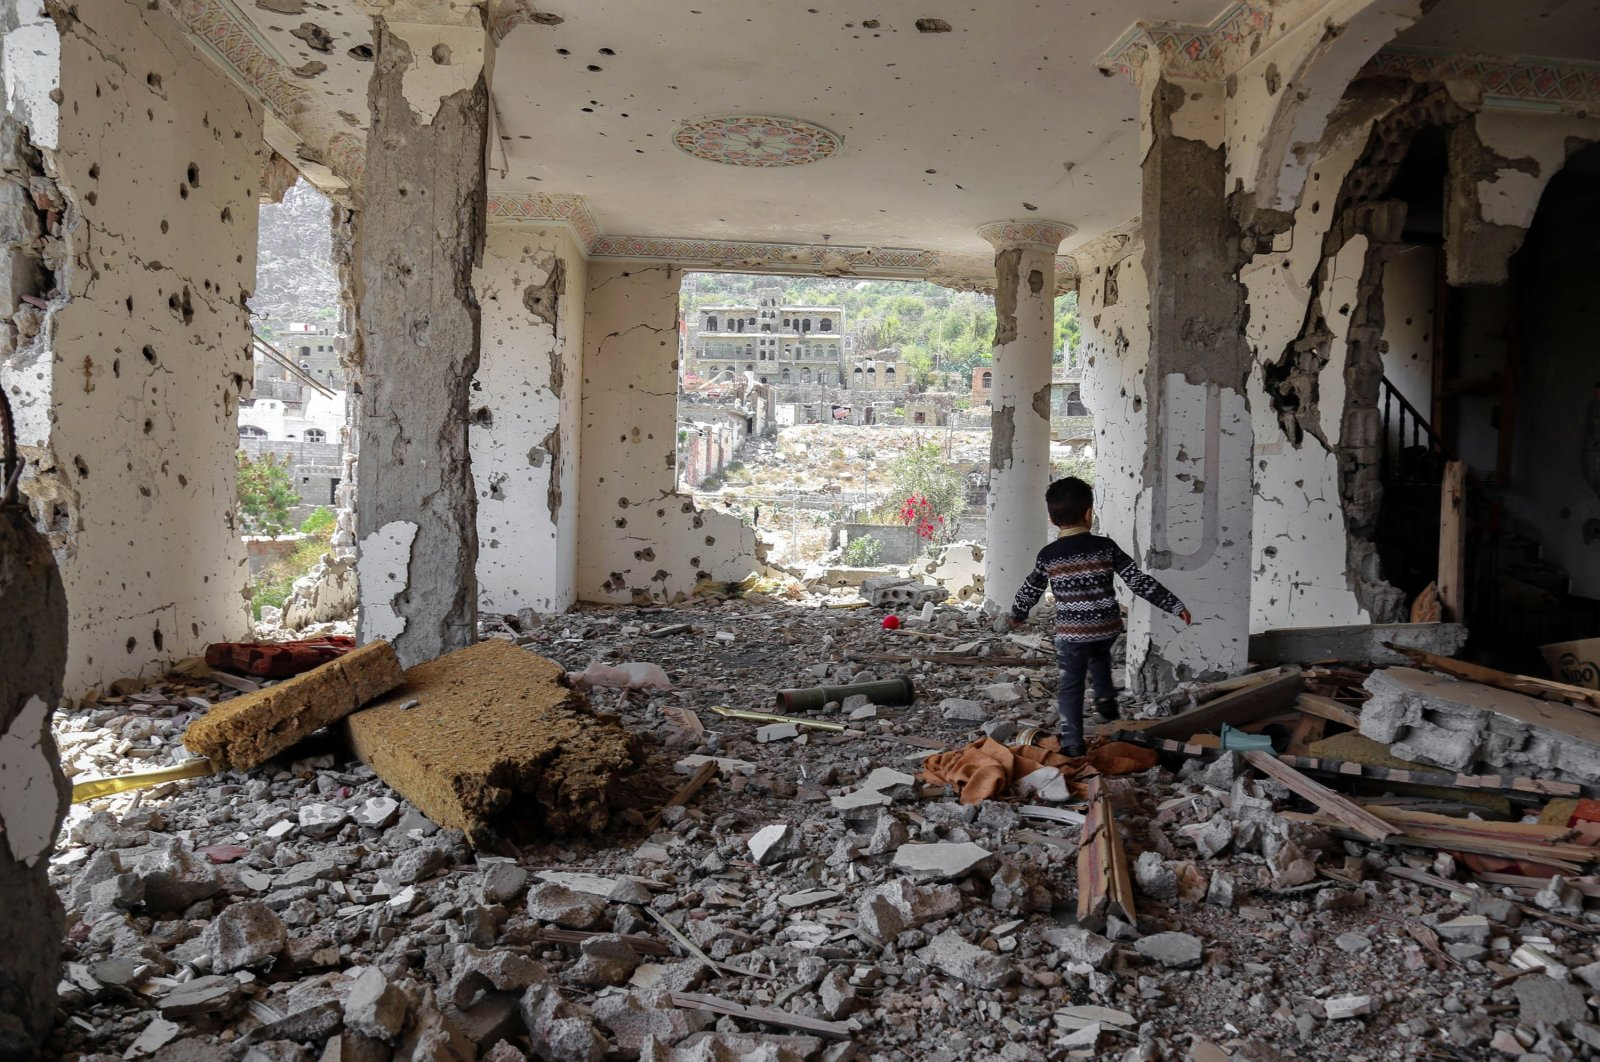 A child walks amidst the rubble of a building that was destroyed in Saudi-led coalition's airstrike in Taez, Yemen, March 18, 2018. (AFP Photo)